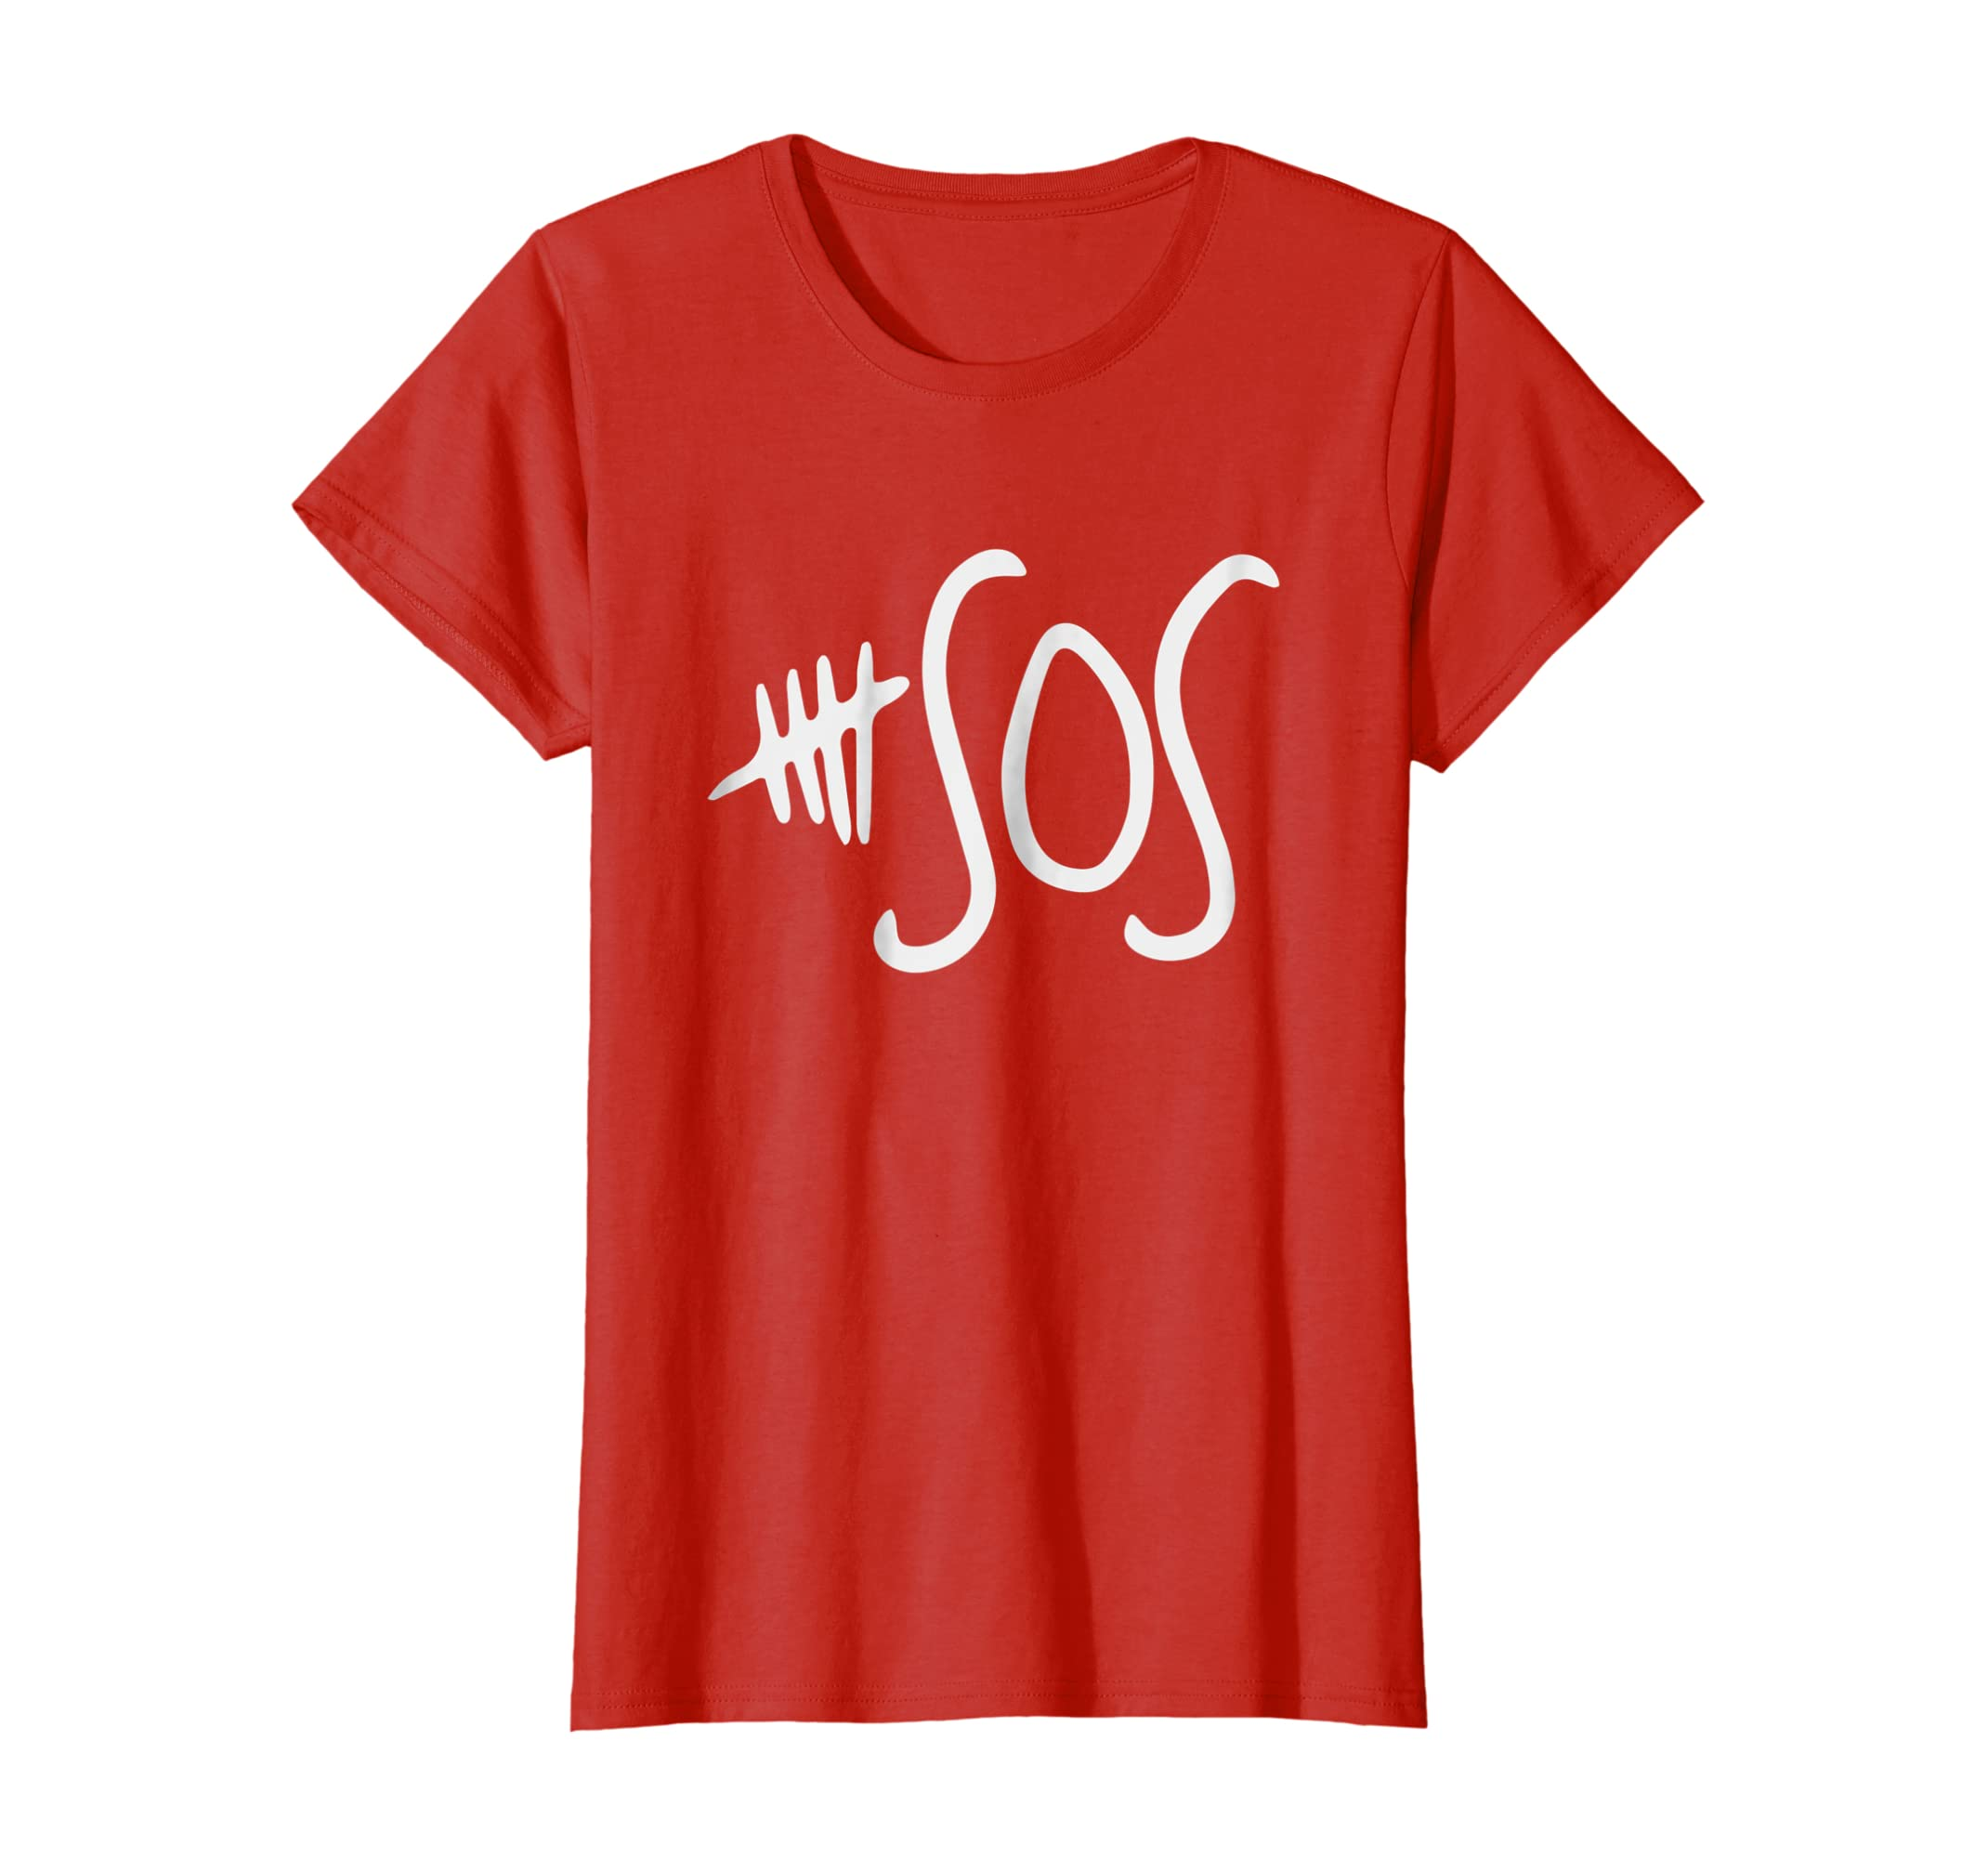 6c0e71c128ef Amazon.com  5sos Merch shirt - 5 sos Gift  Clothing